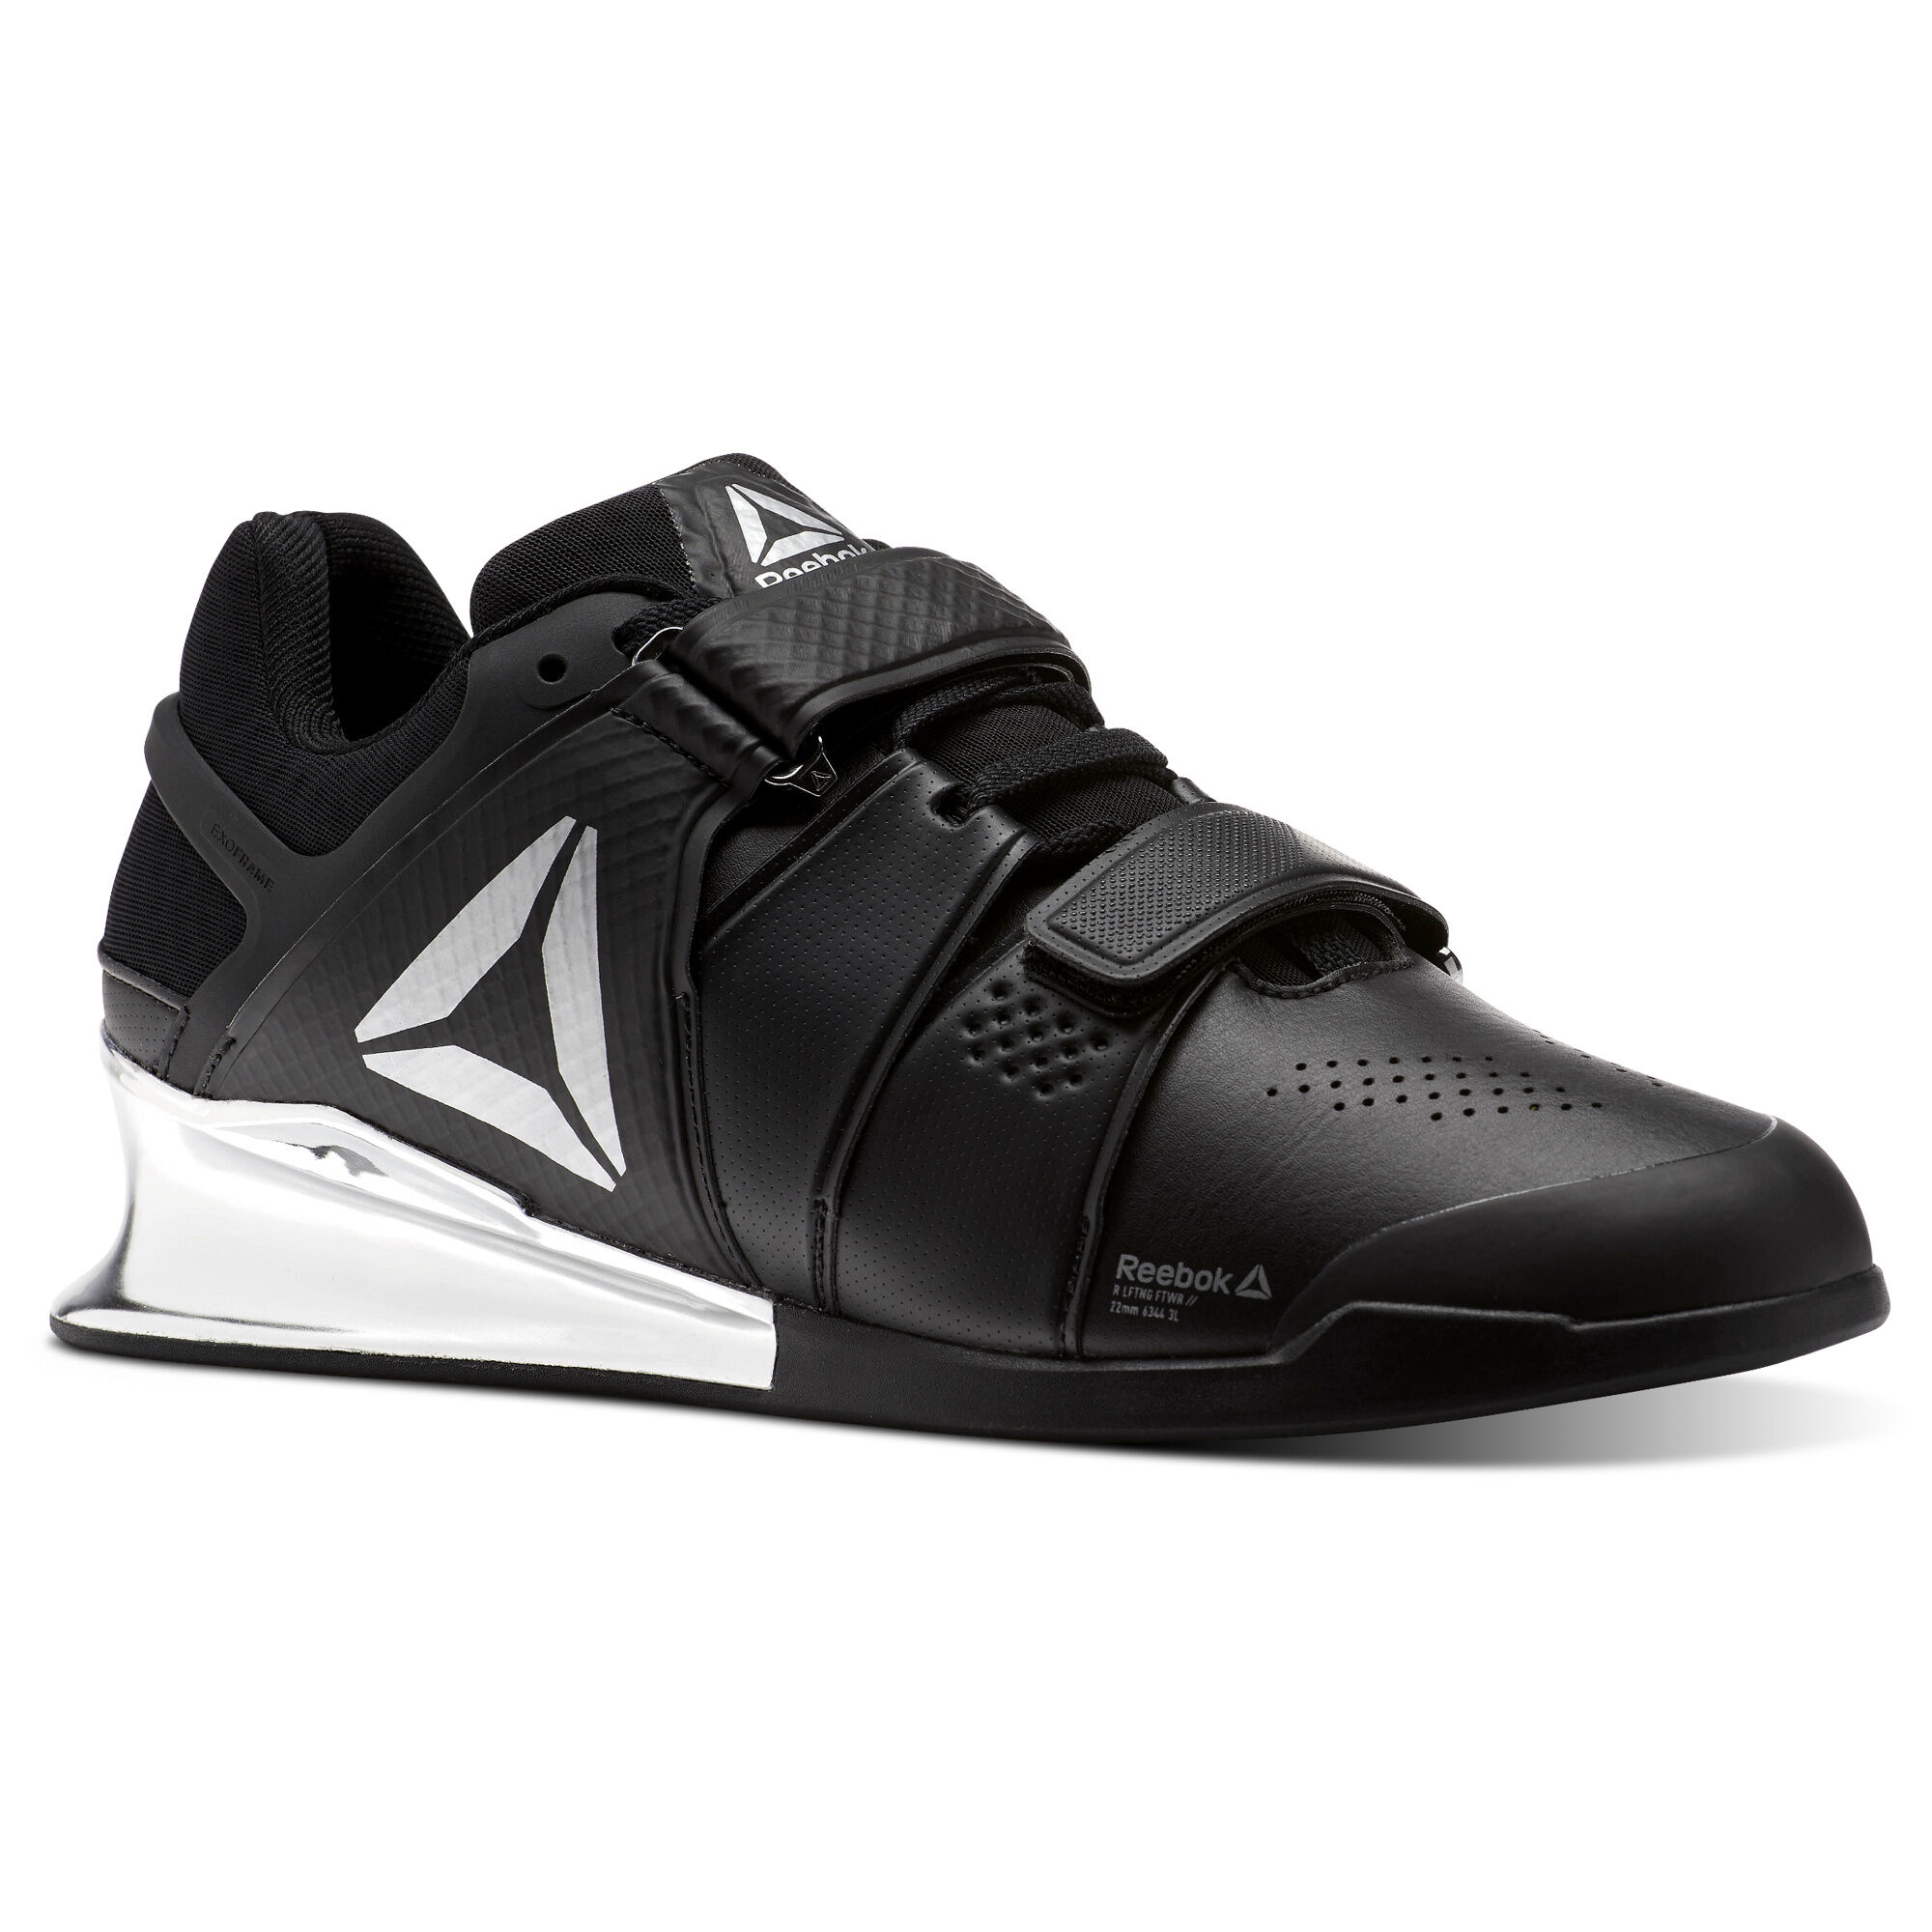 Reebok LEGACY LIFTER - Sports shoes - black/white/silver 6sZAx